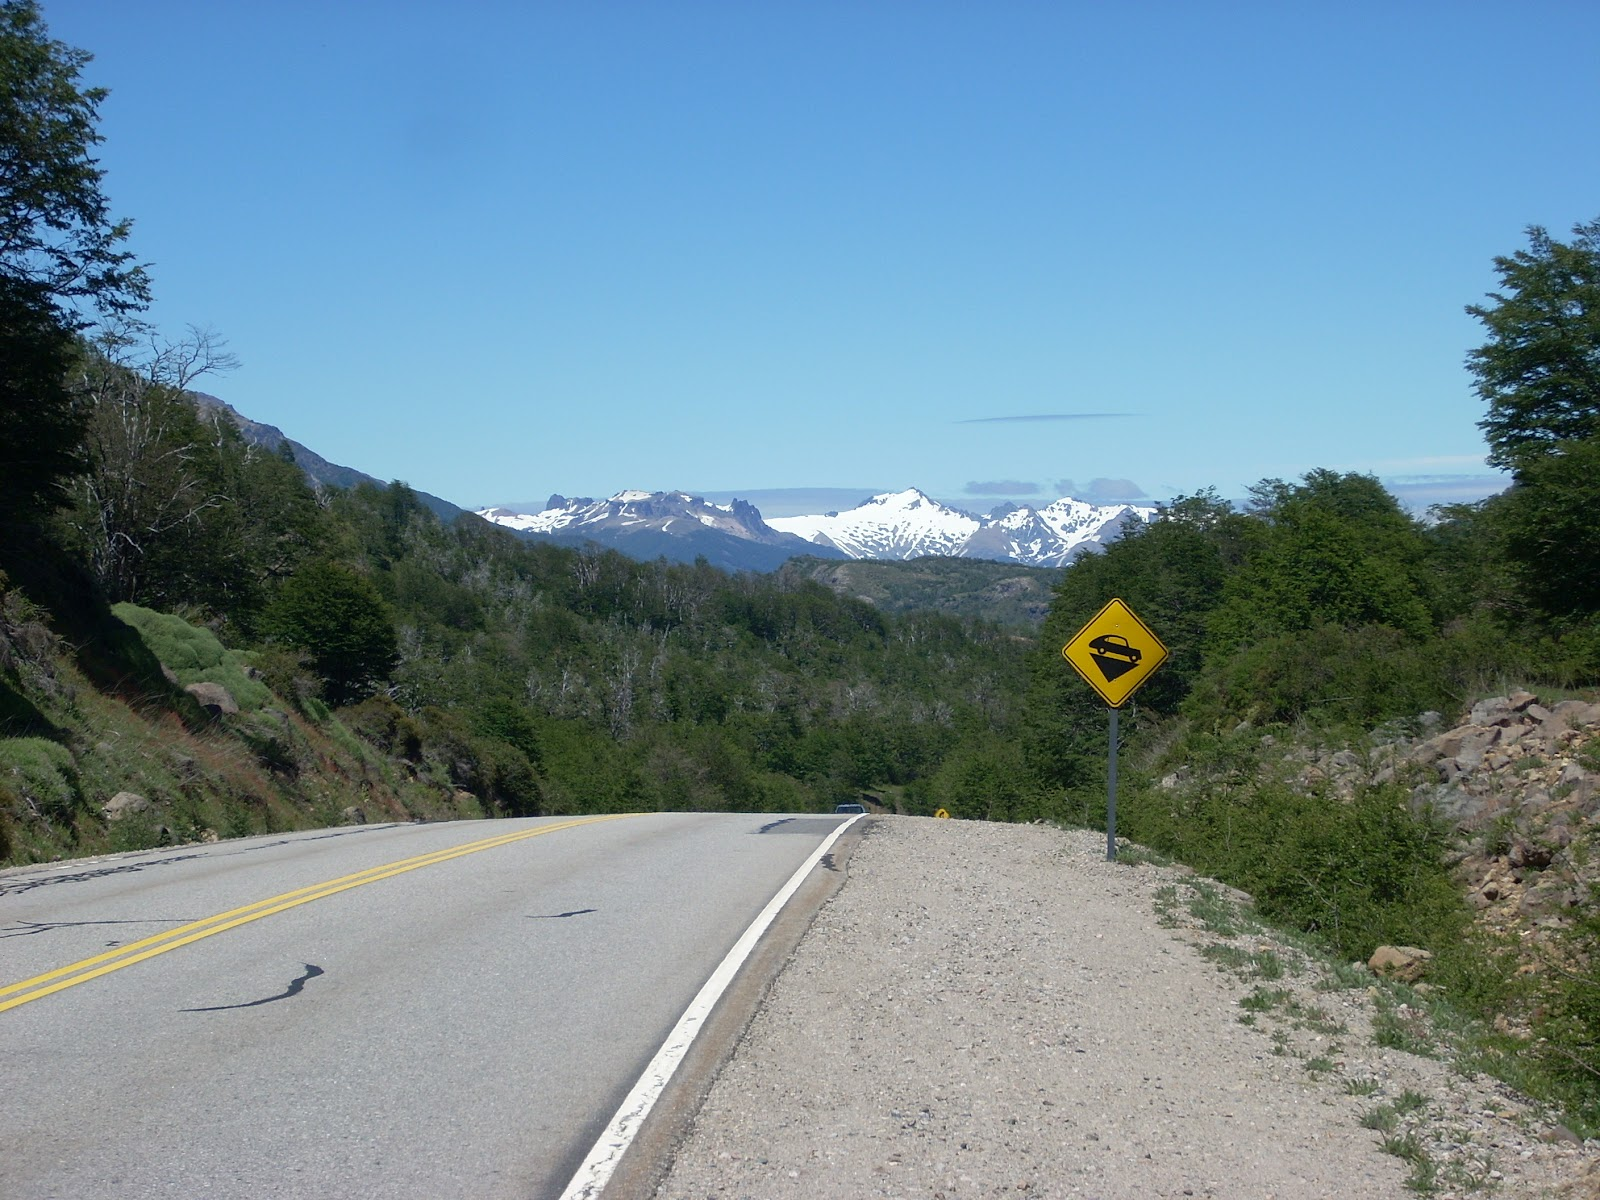 That's what I want to see - downhill, smooth road, clear sky, mountain scenery